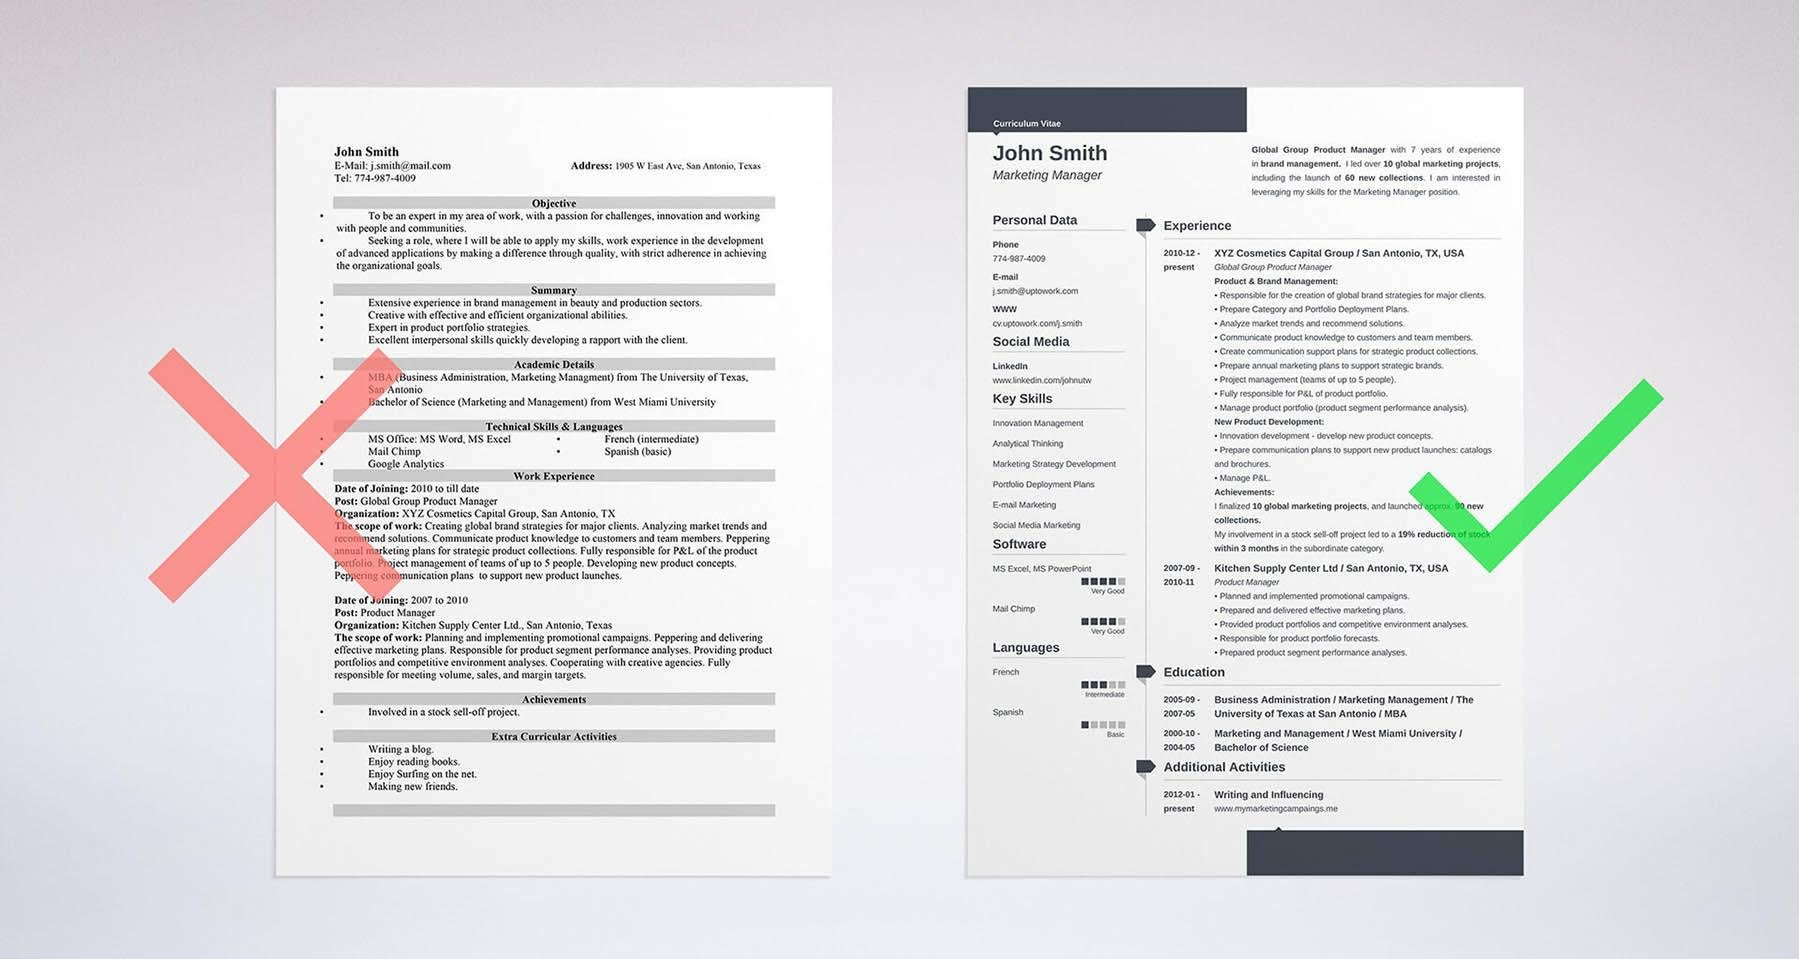 Hereu0027s An Example Of A Template From Our Resume Builder That Properly  Showcases Skills On A Resume.  Resume Skills And Abilities List